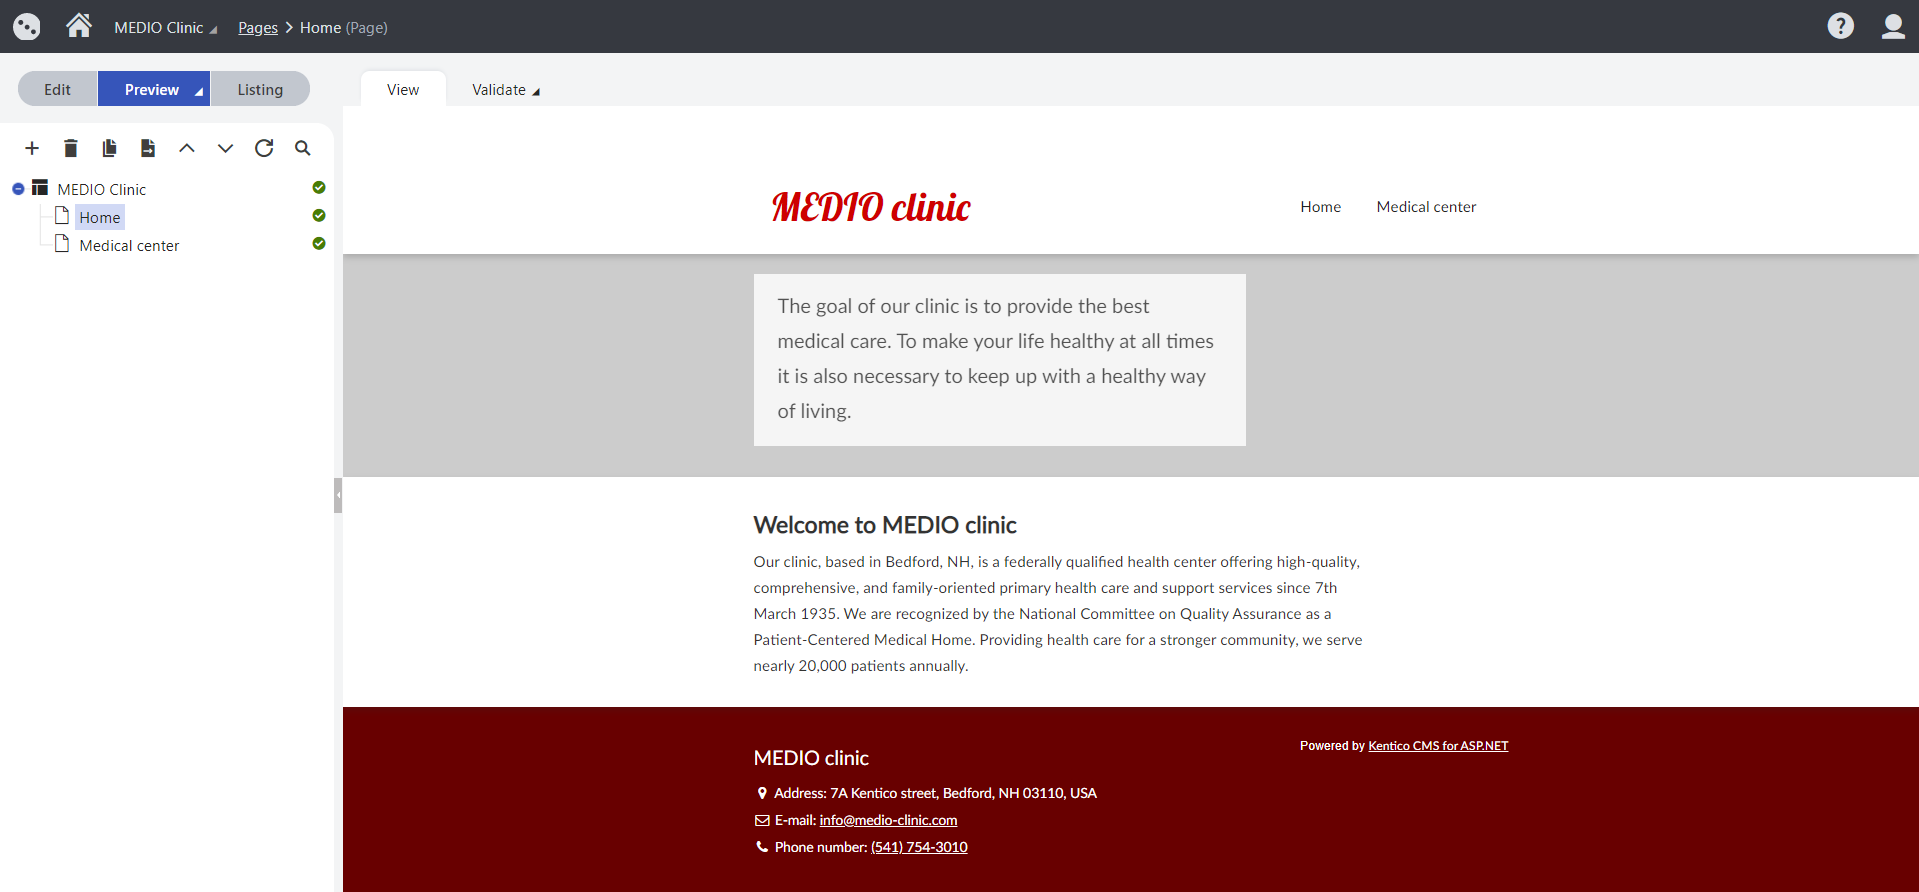 Preview of the Medio Clinic's Home page in the administration interface